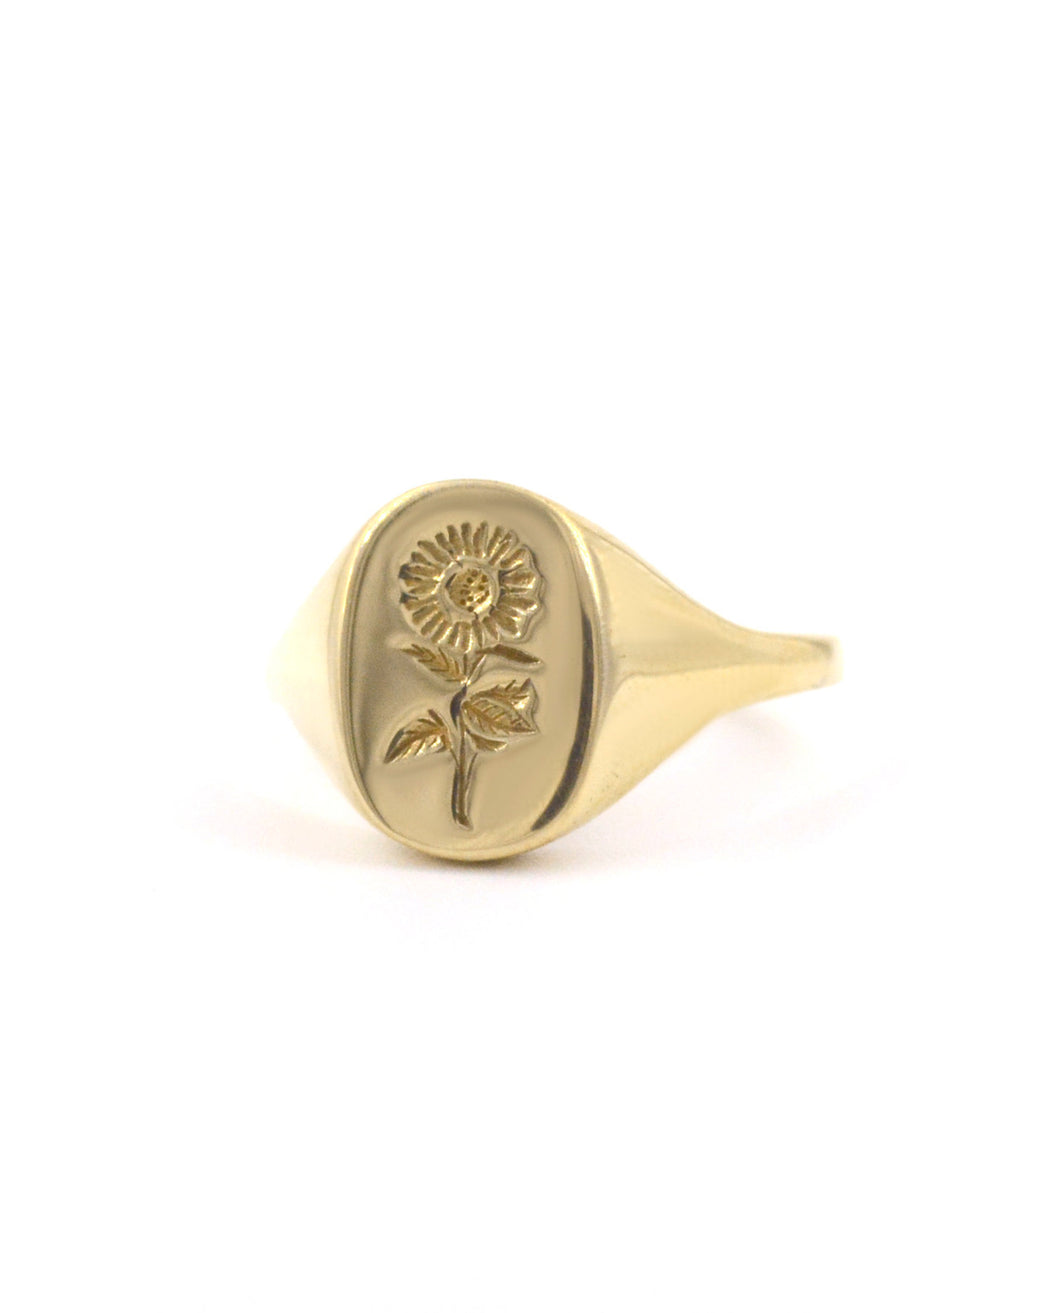 CLAUS:Sunflower Signet Ring,ANOMIE